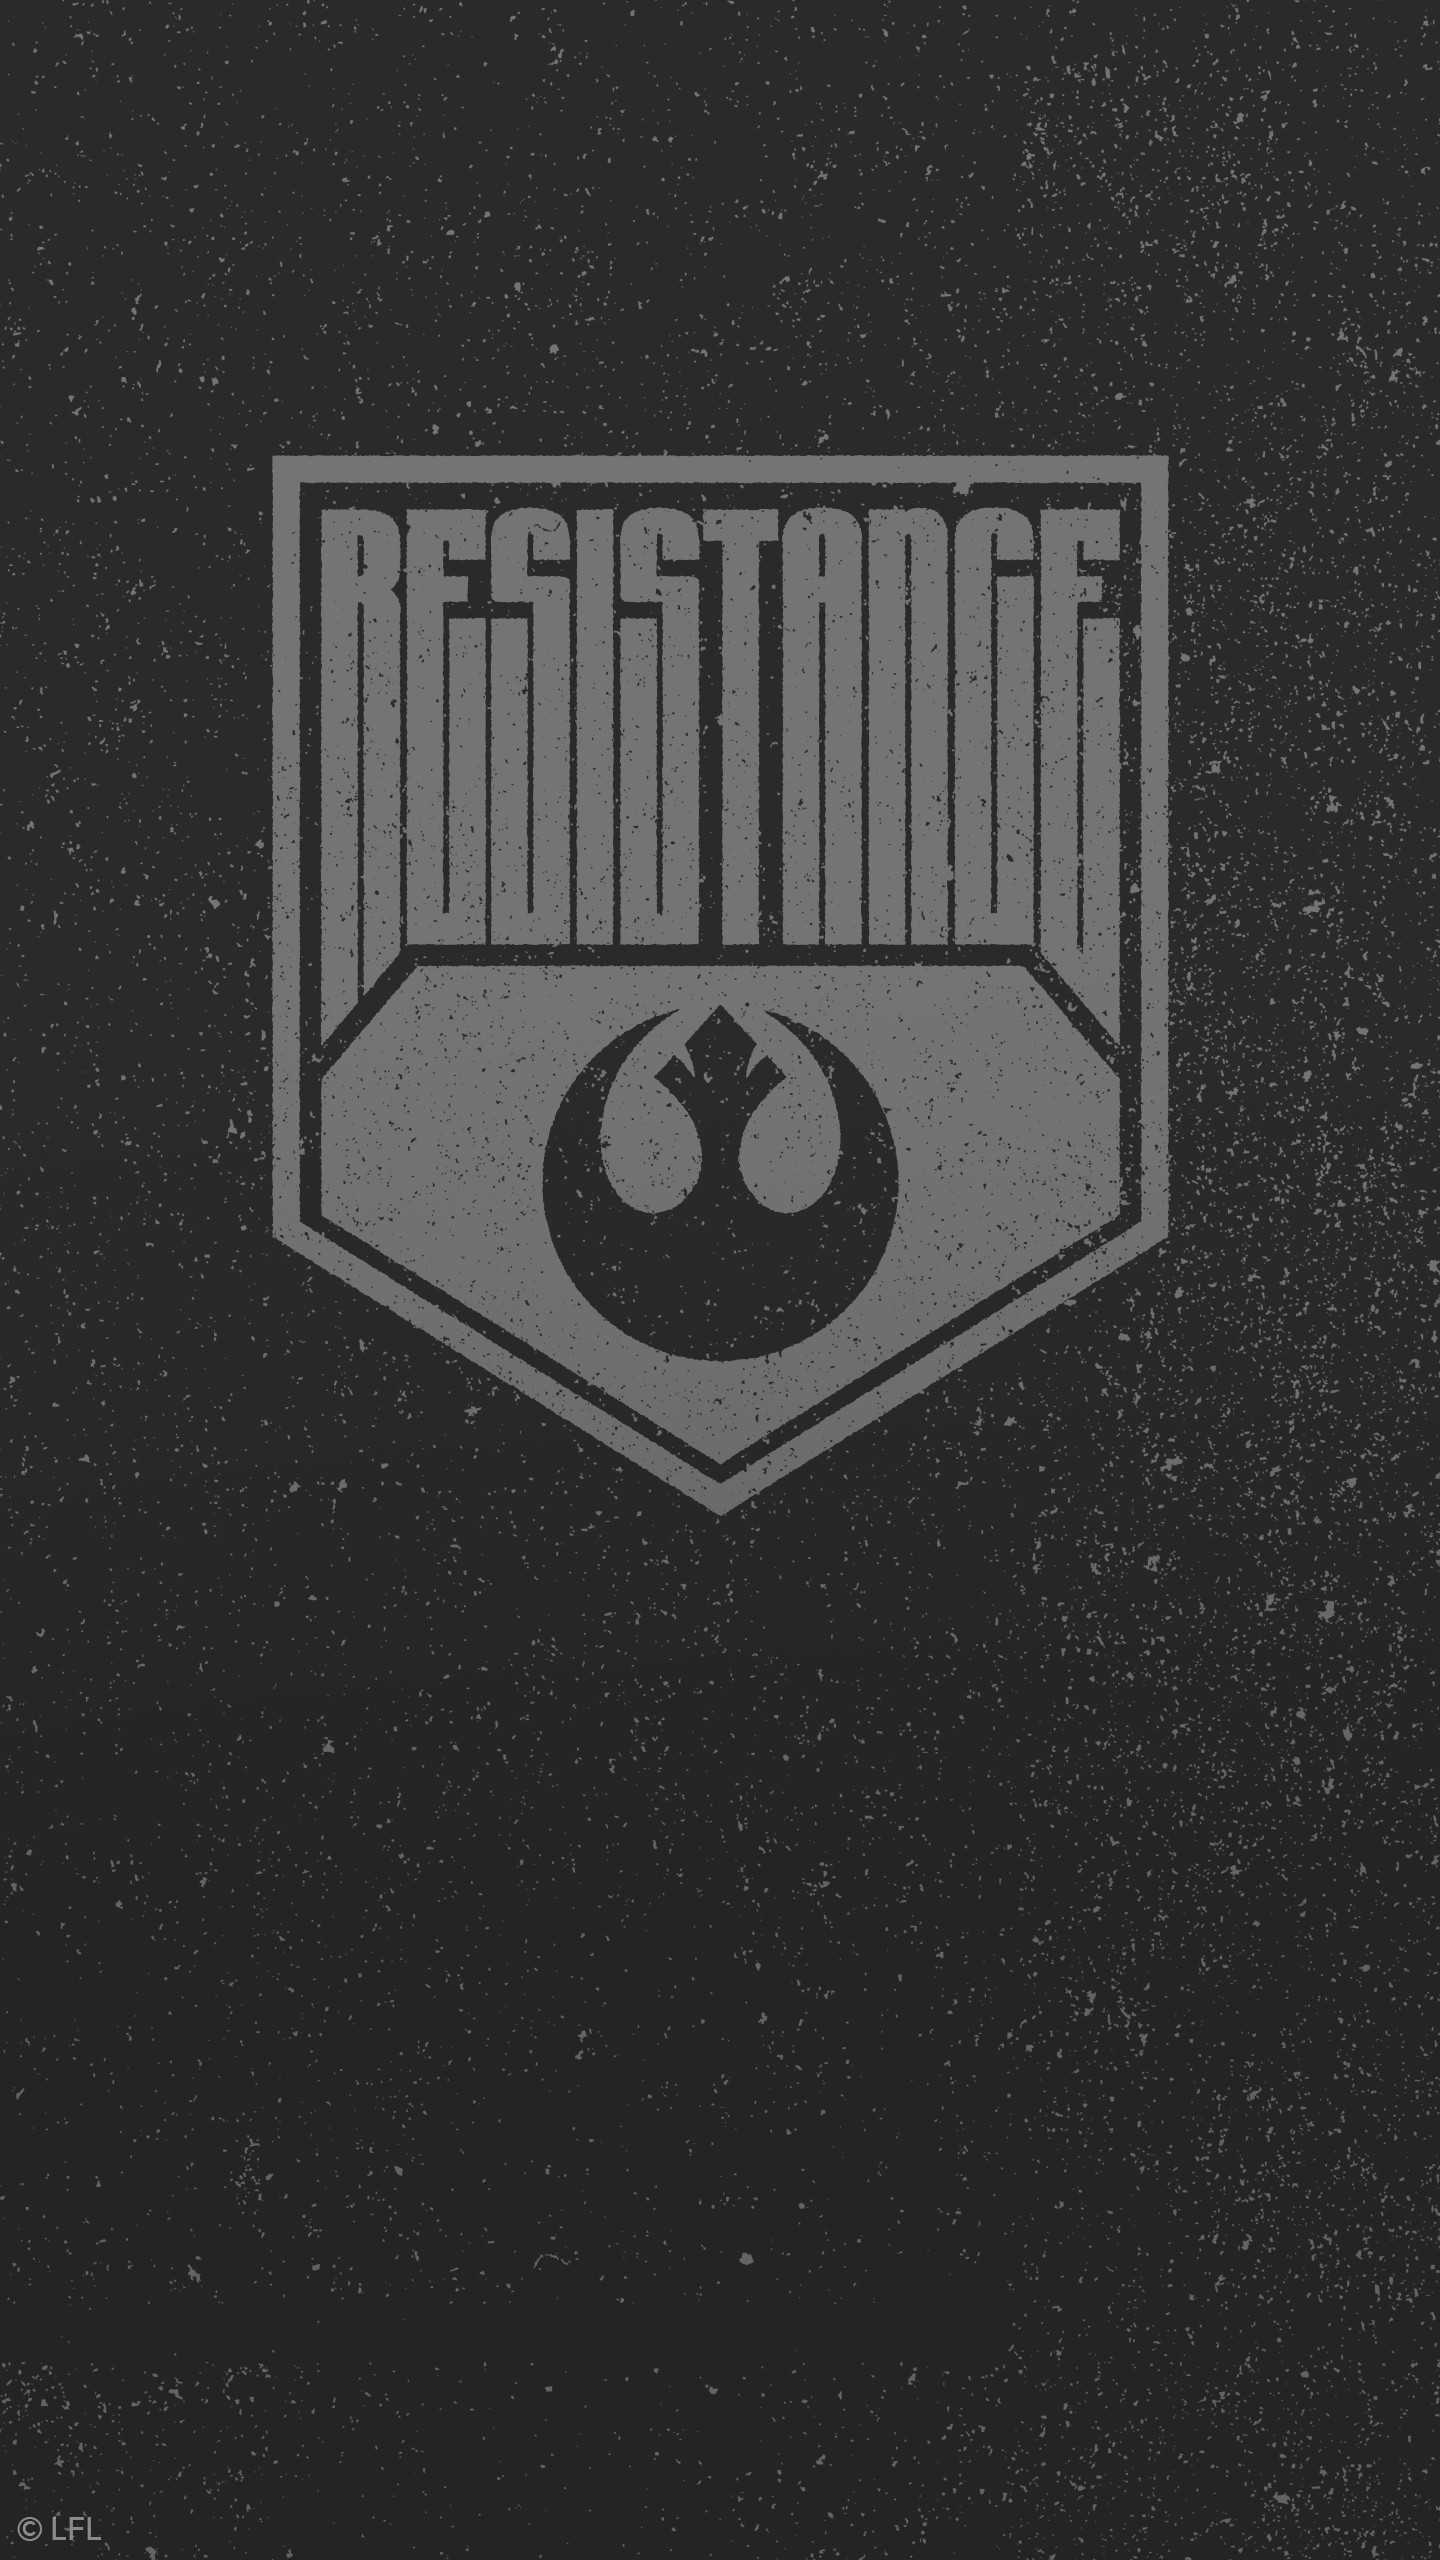 Star Wars Android Wallpapers Top Free Star Wars Android Backgrounds Wallpaperaccess